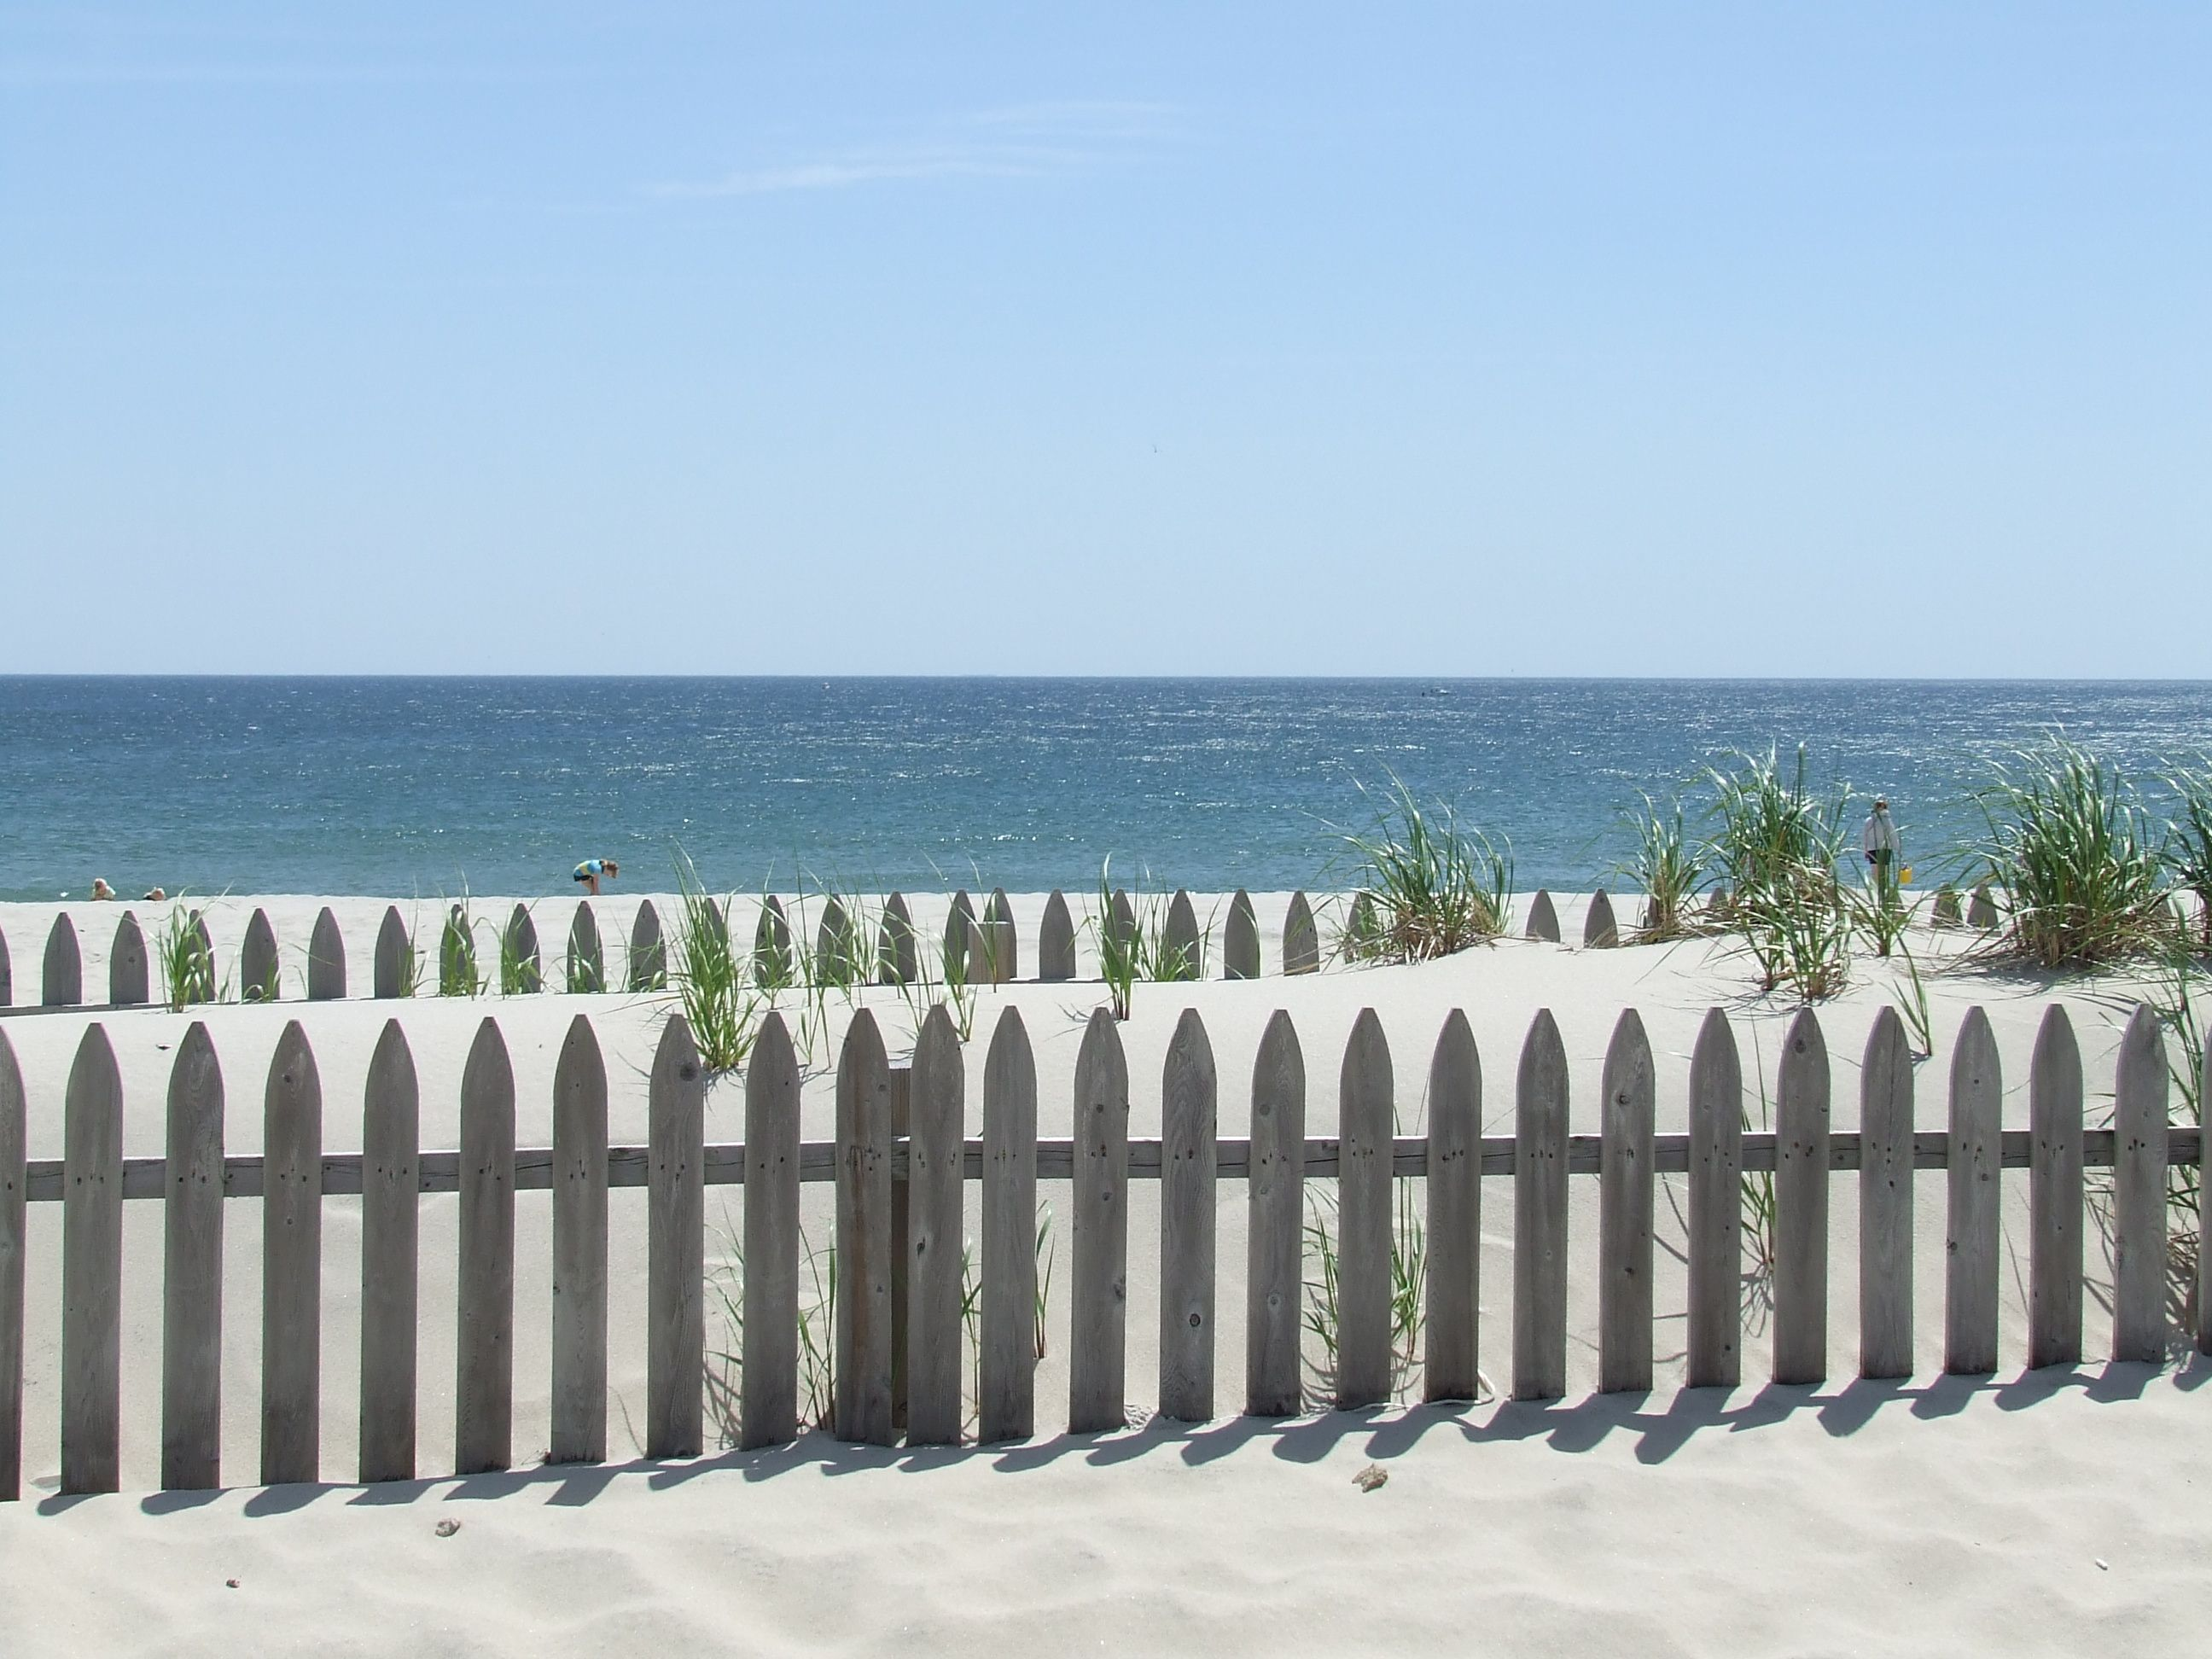 Looking over the sand dune fences at ocean beach new jersey shore looking over the sand dune fences at ocean beach new jersey shore nvjuhfo Choice Image